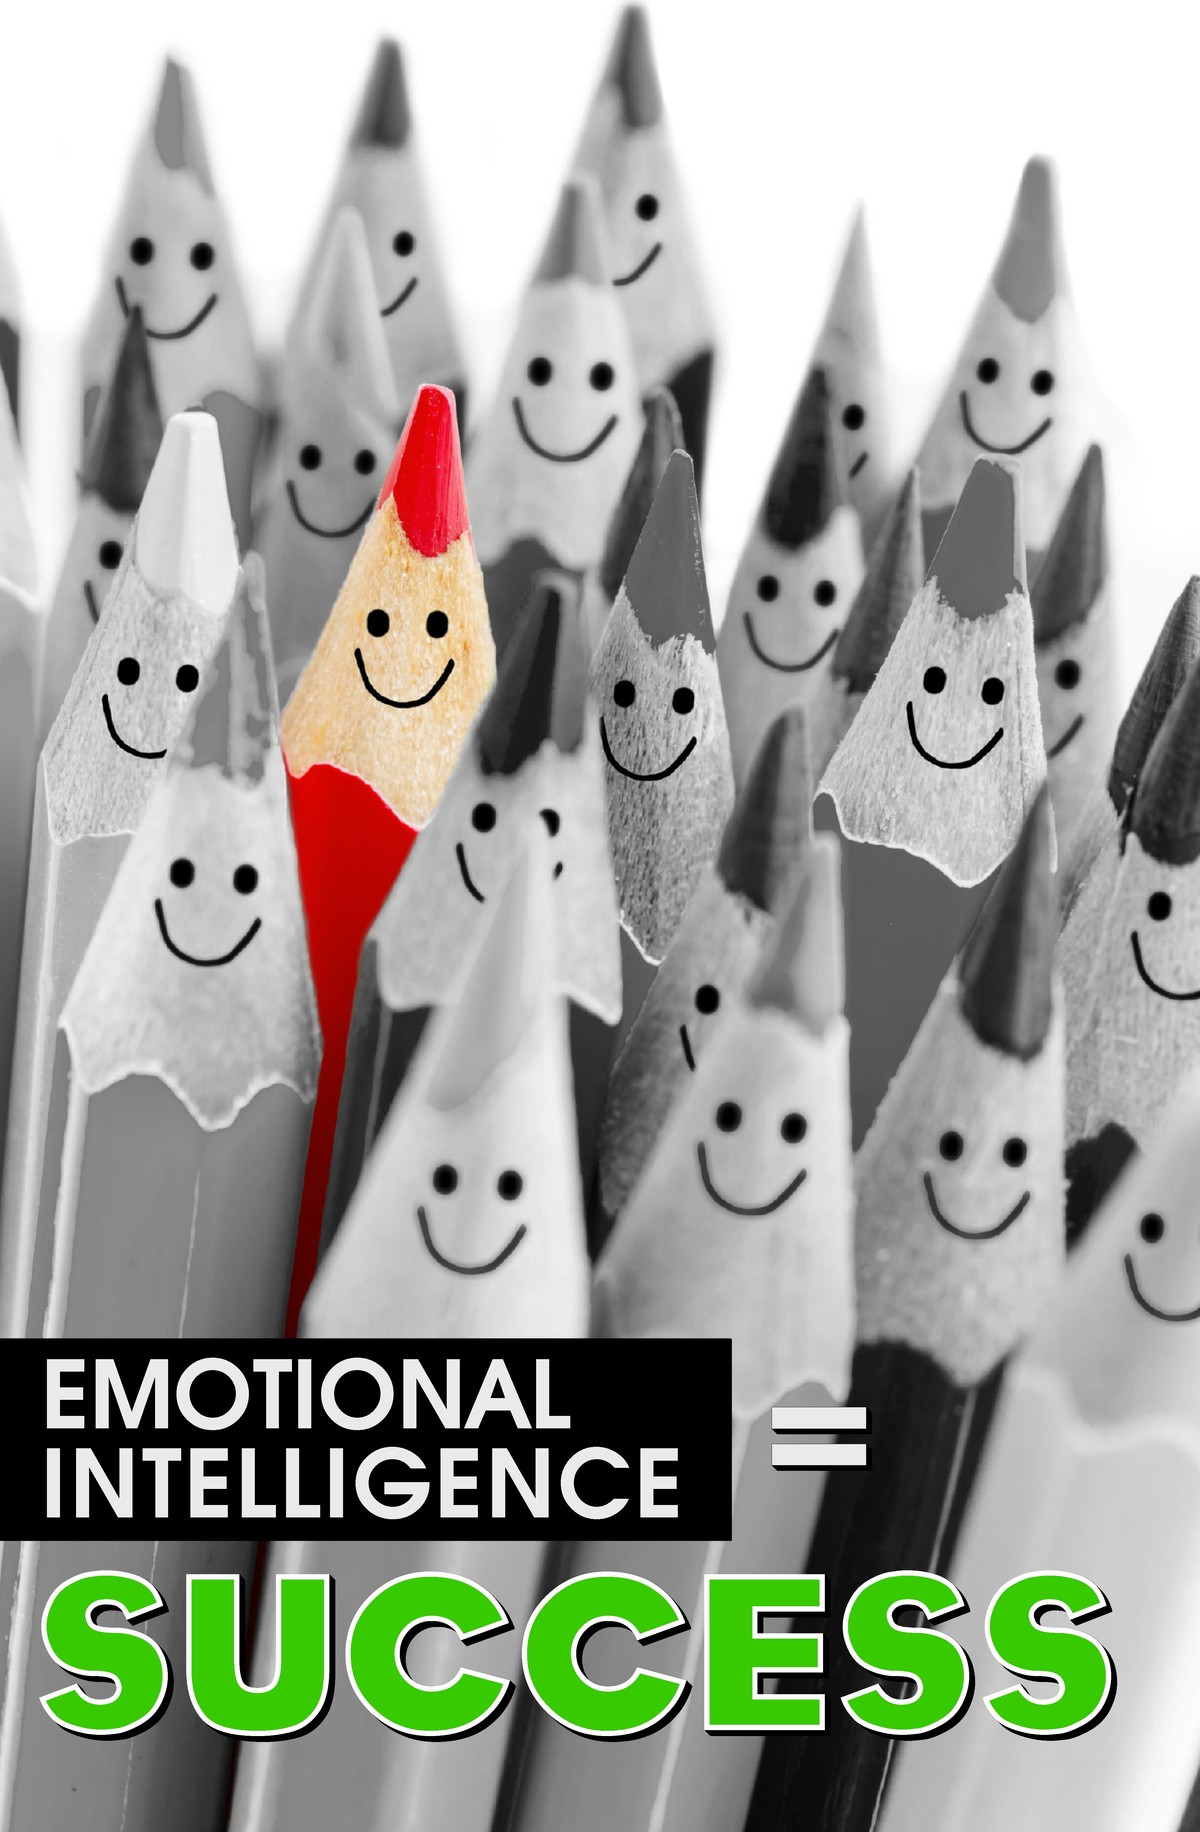 L7010 - Emotional Intelligence Equals Success